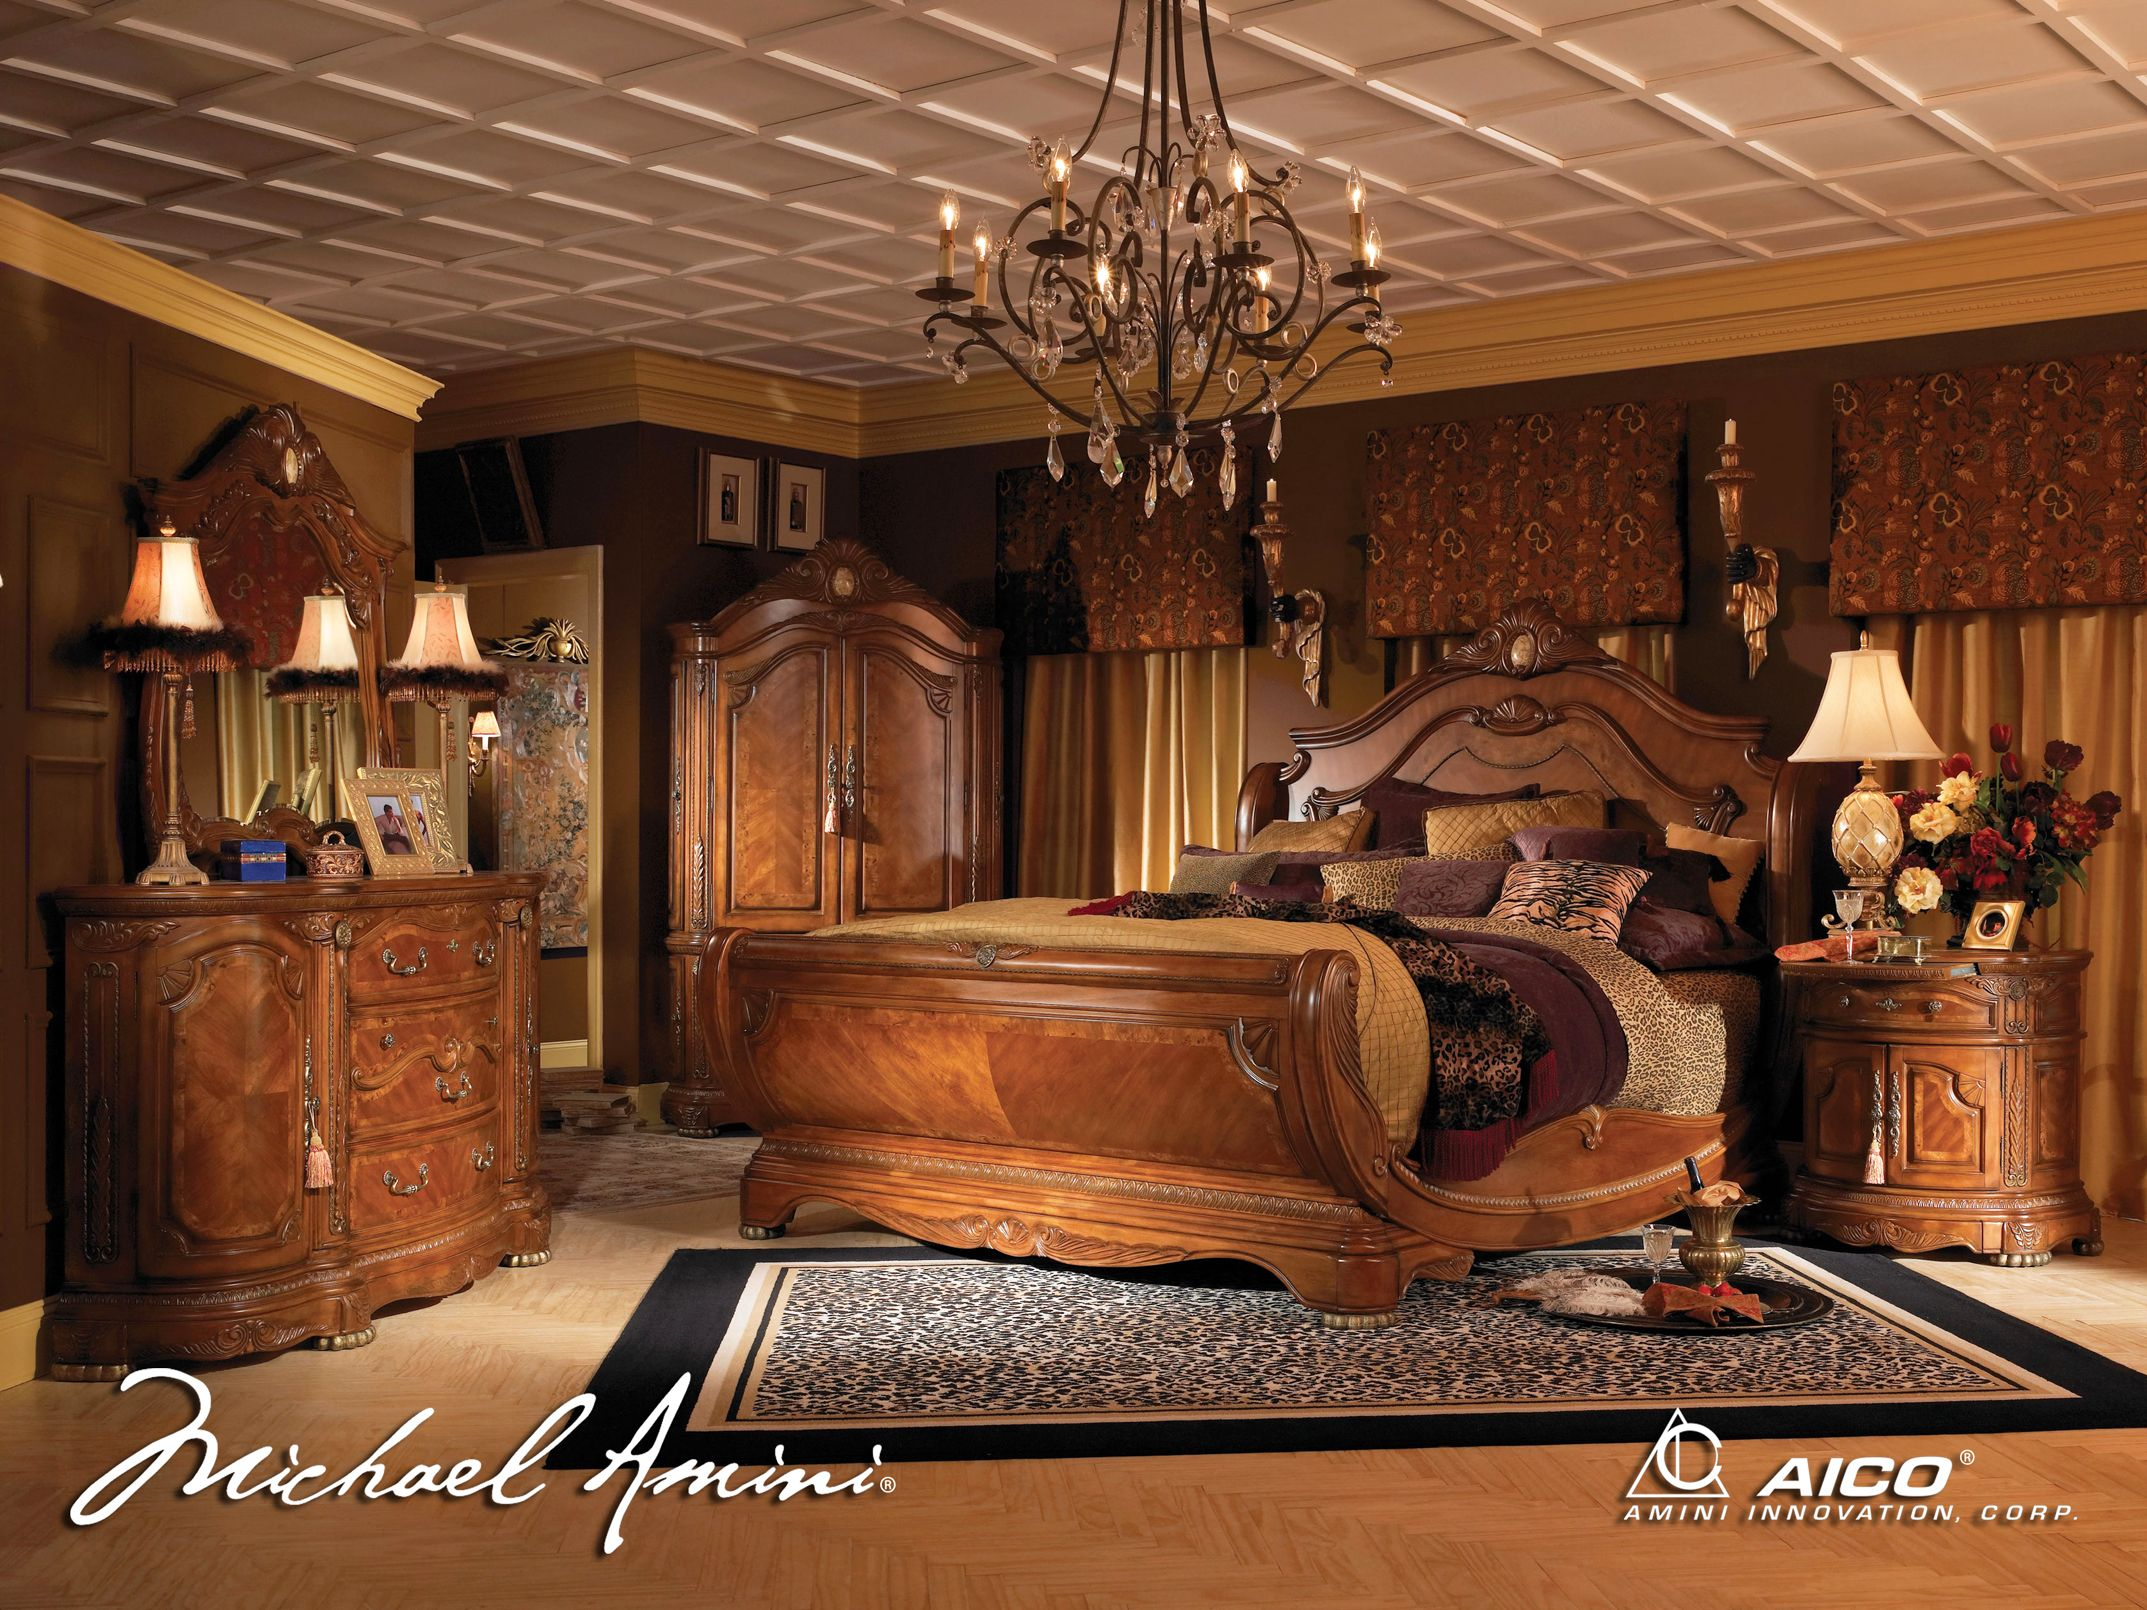 California King Size Bed Sets | king bedroom sets aico 5pc ...